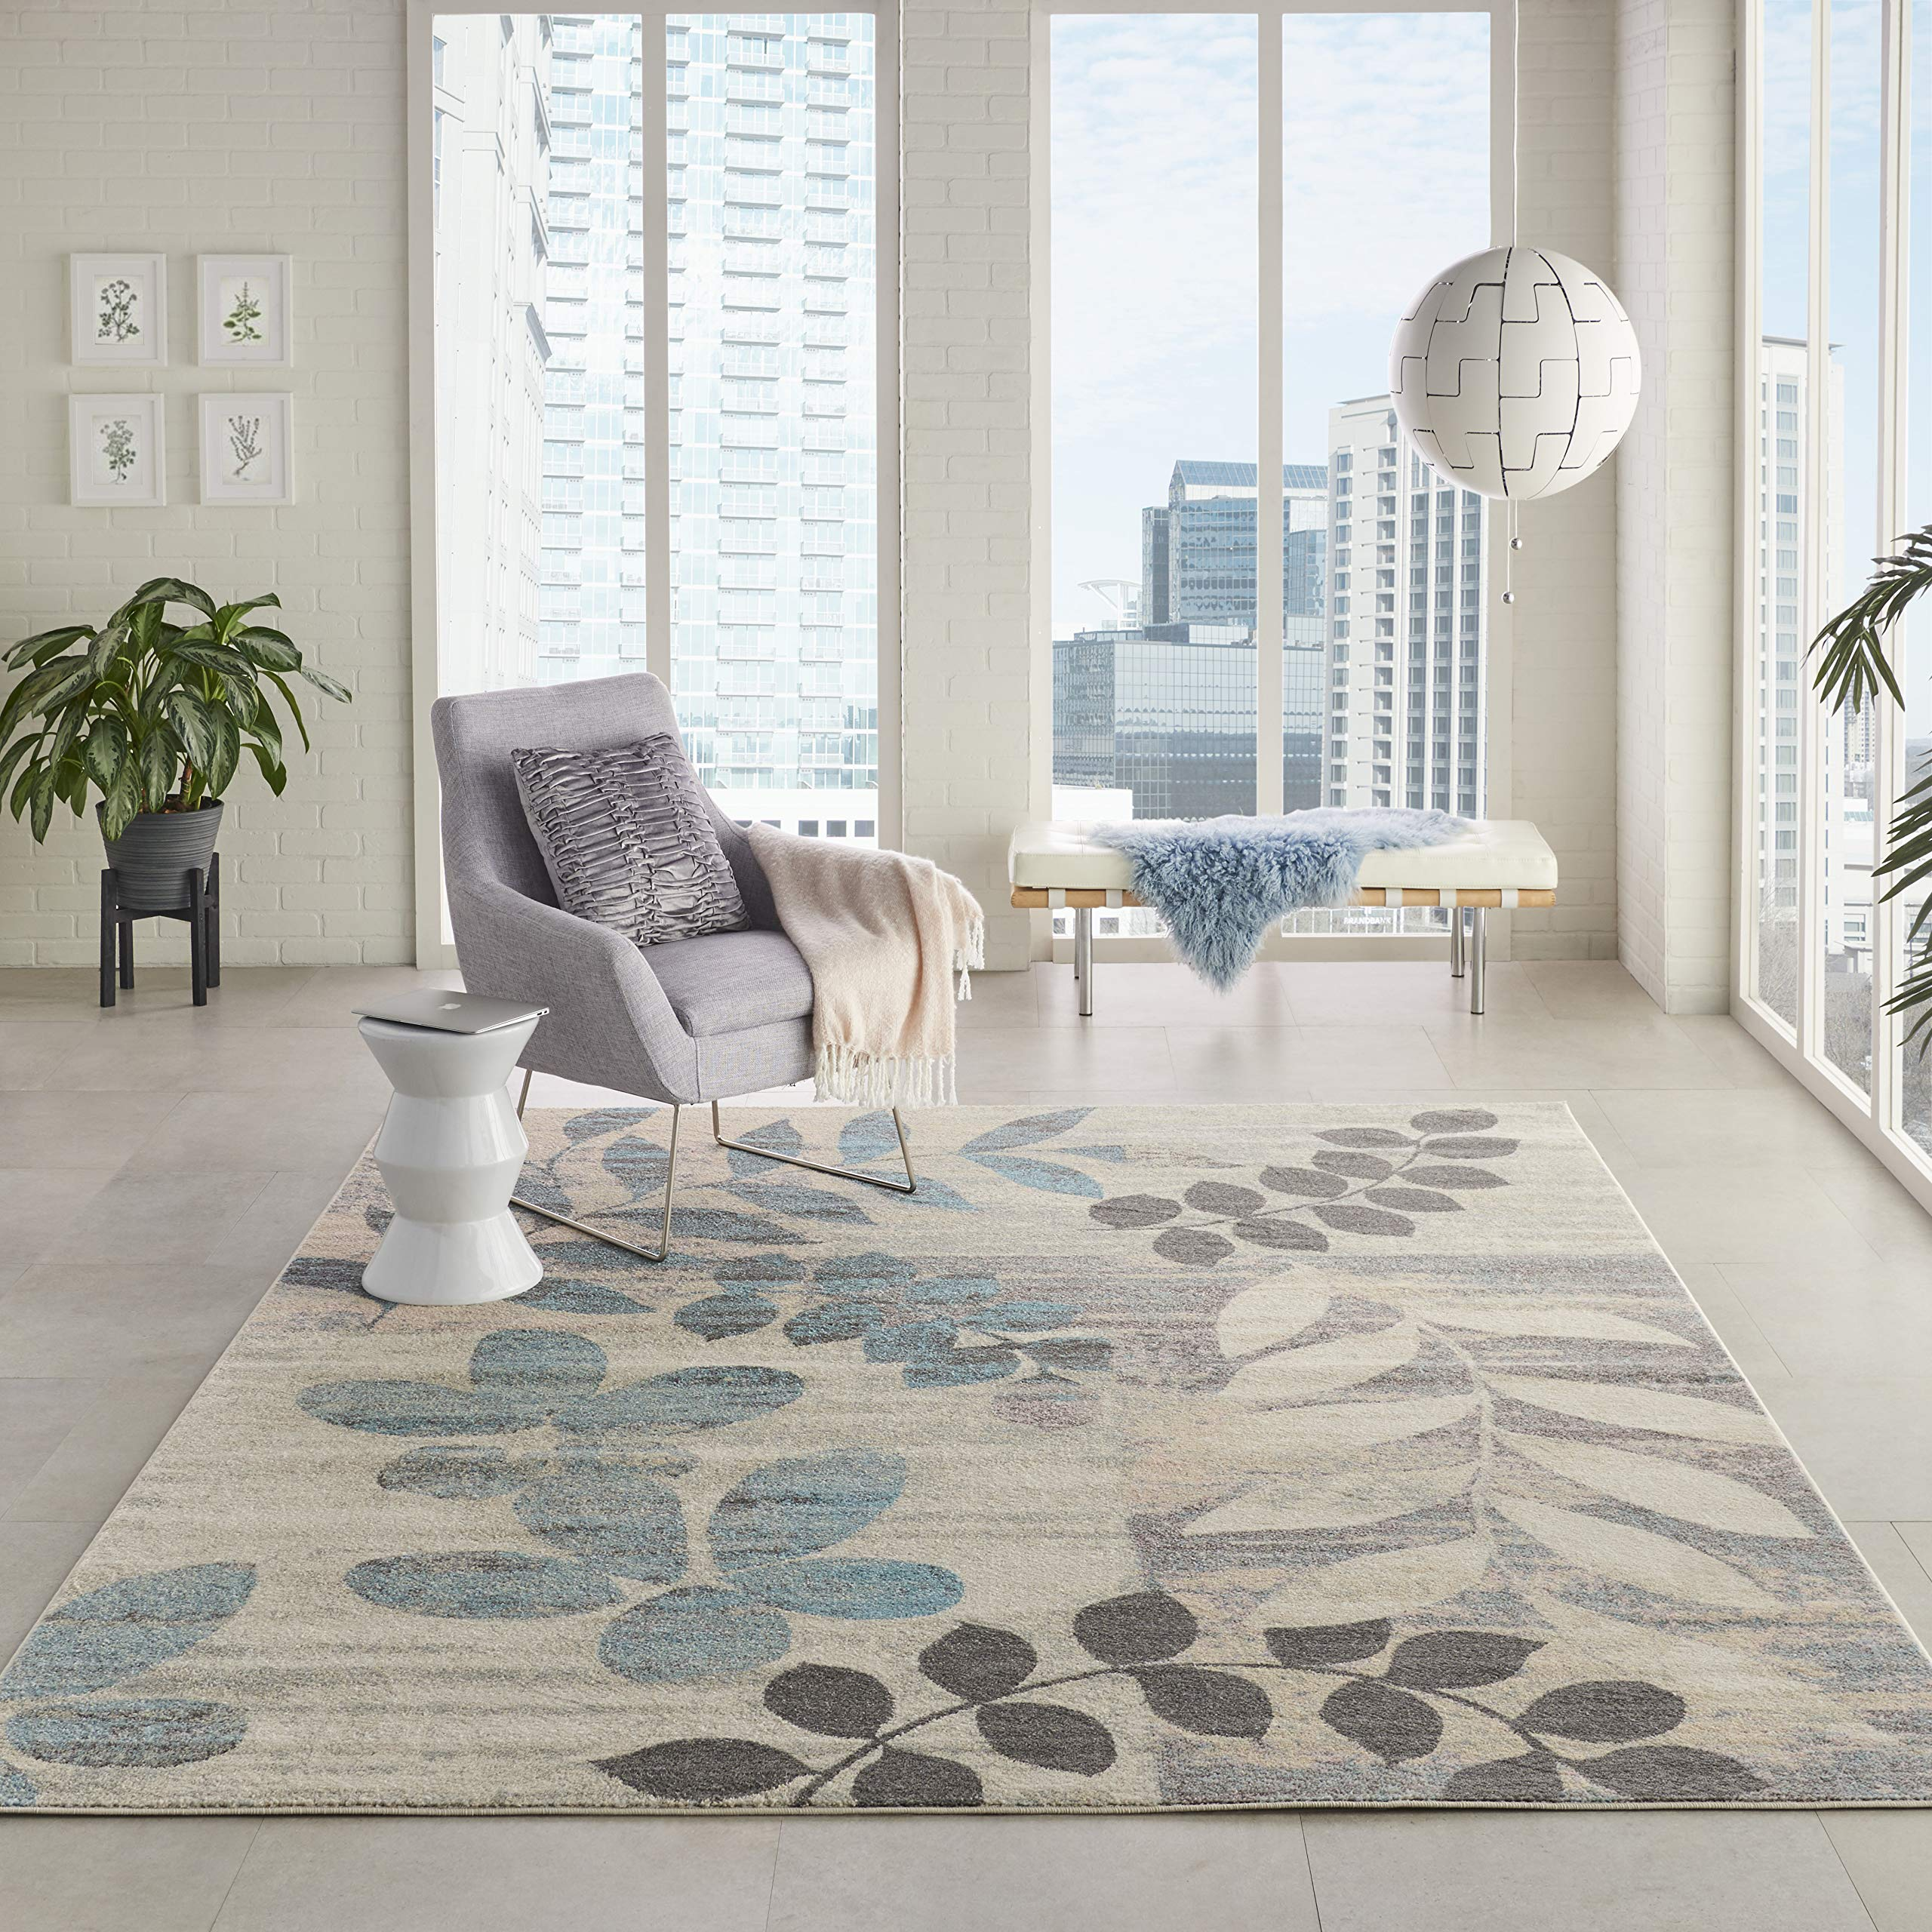 Nourison TRA01 Tranquil Modern Distressed Ivory/Light Blue Area Rug 8' X 10' by Nourison